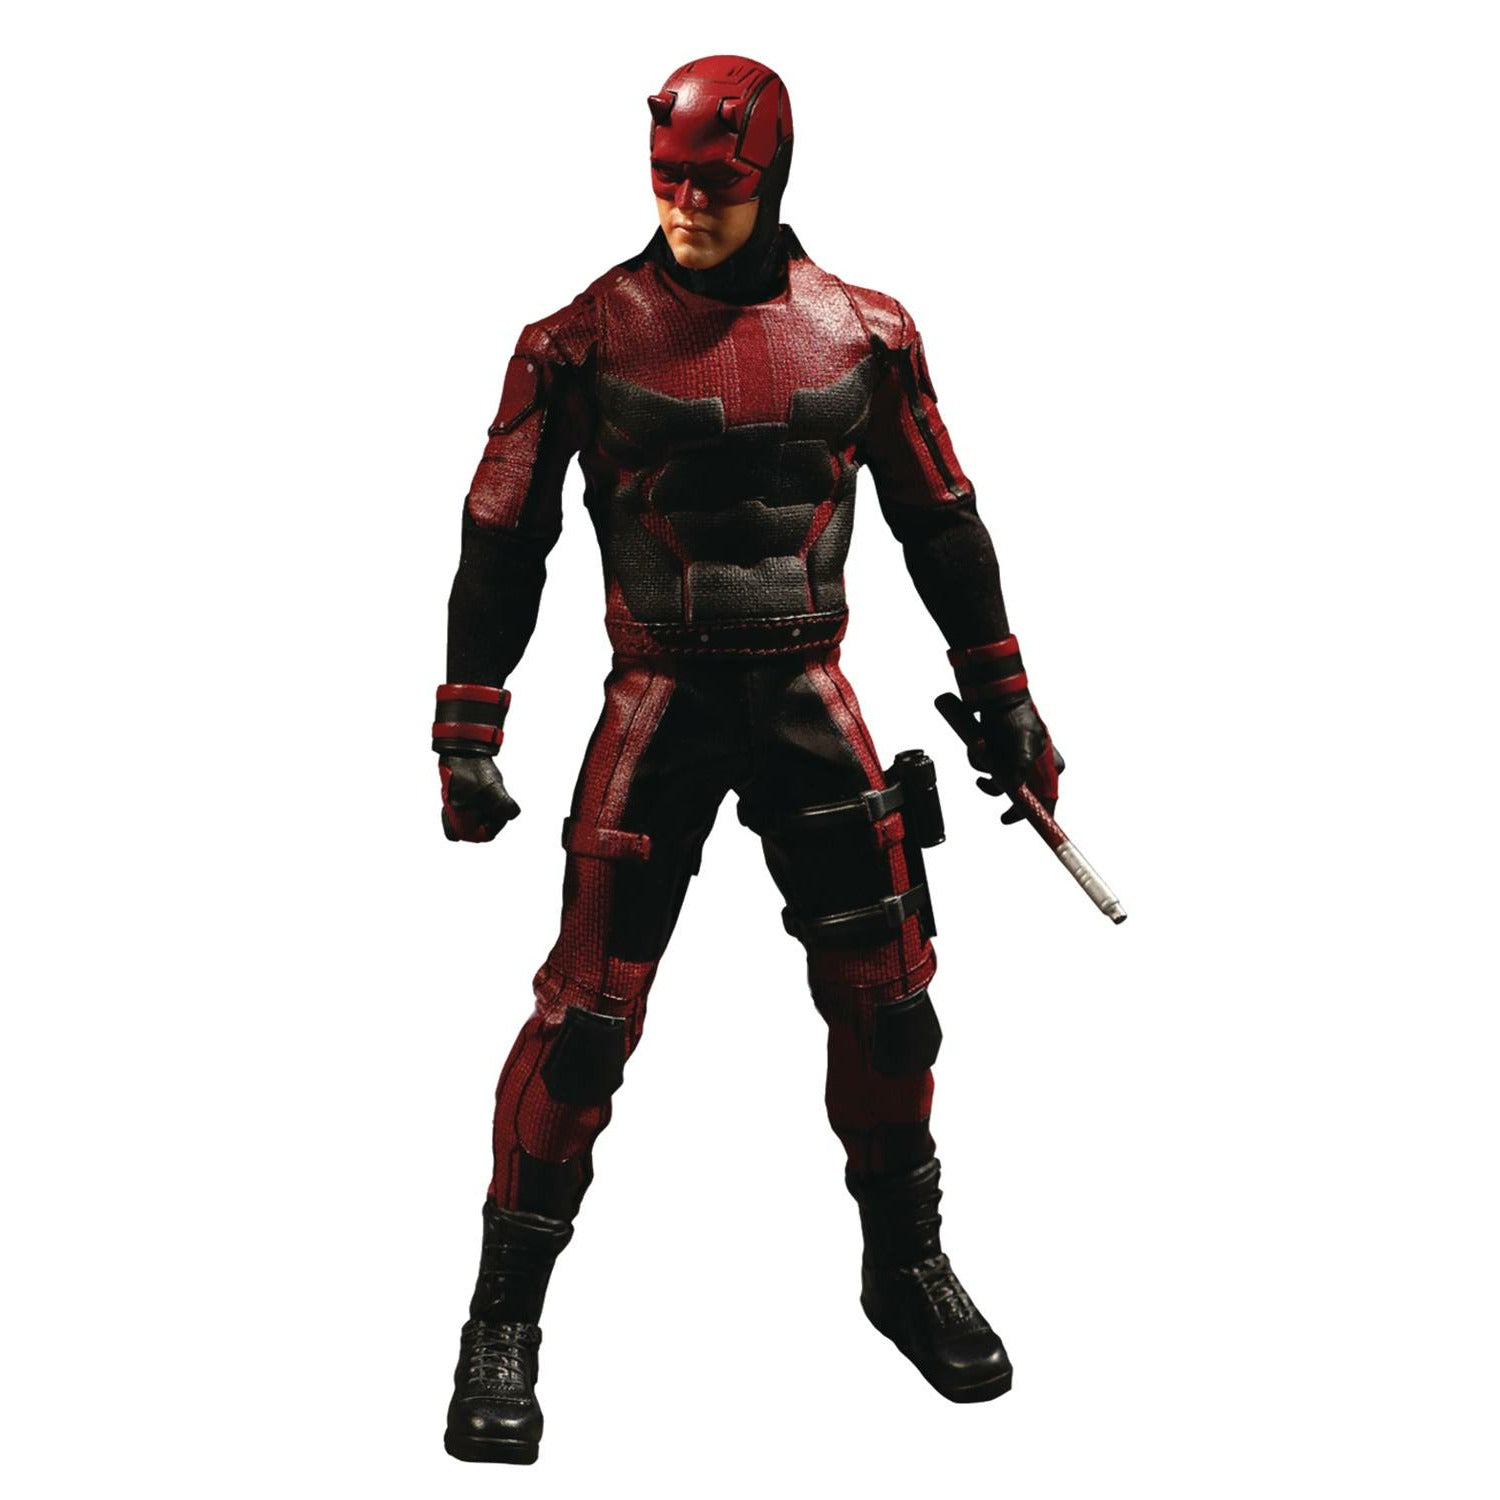 Marvel Netflix Daredevil One:12 Collective 6 inch Action Figure